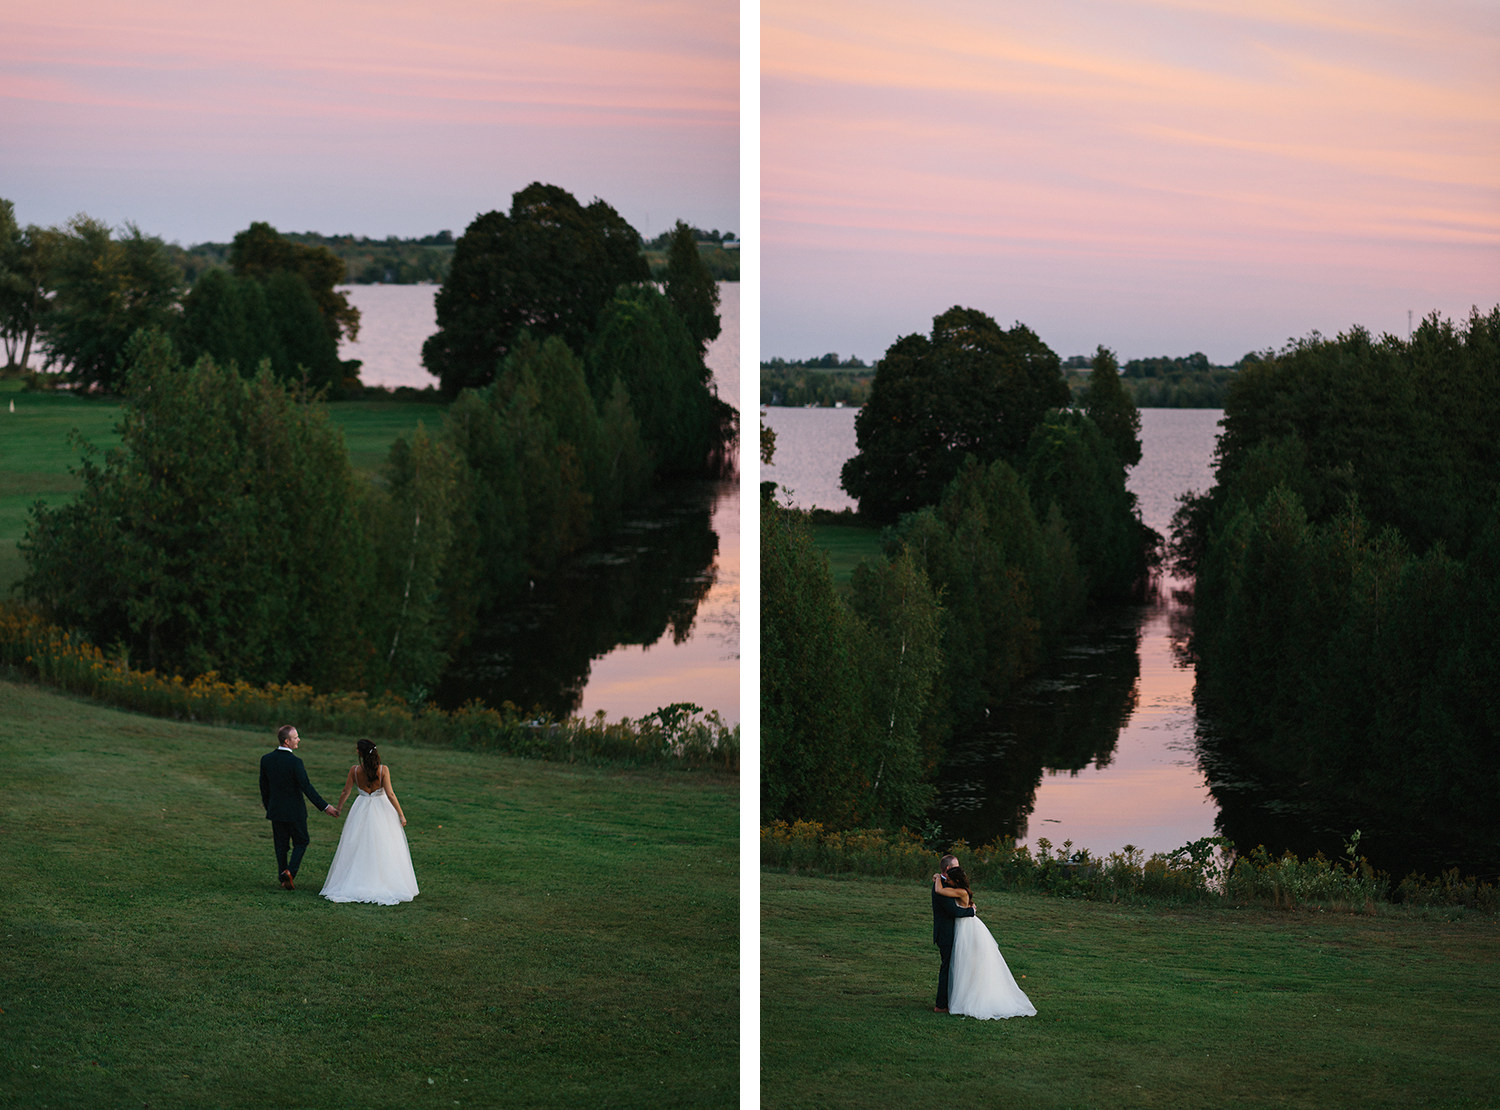 16-couples-portrait-ideas-sunset-golden-hour-in-field-view-of-lake-At-Eganridge-Resort-Venue-Muskoka-Ontario-Wedding-Photography-by-Ryanne-Hollies-Photography-Toronto-Documentary-Wedding-Photographer.jpg